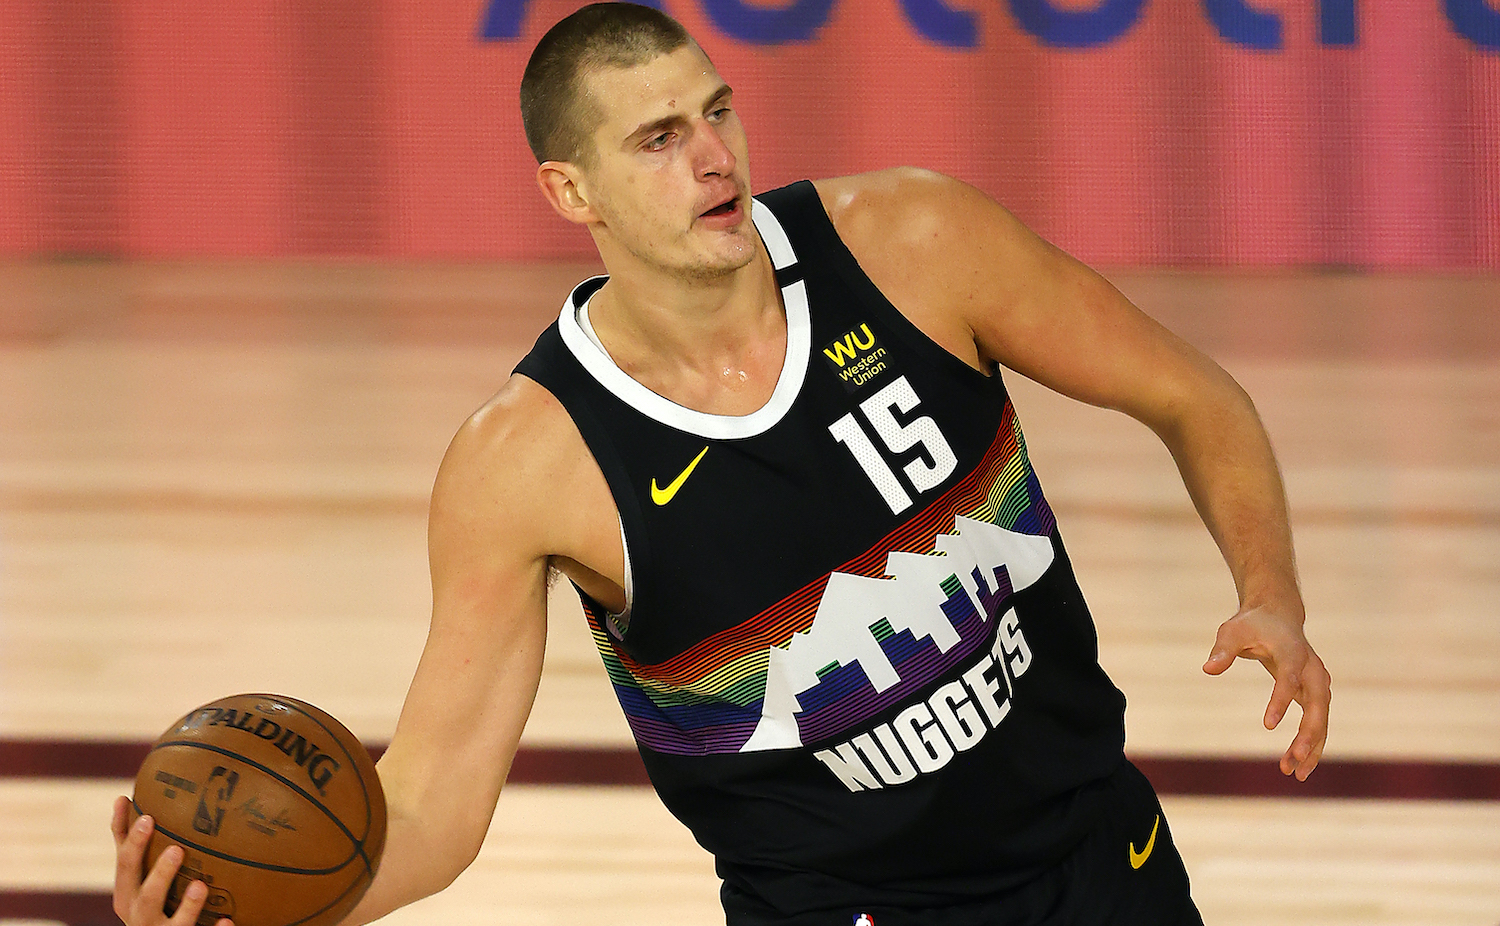 LAKE BUENA VISTA, FLORIDA - AUGUST 25: Nikola Jokic #15 of the Denver Nuggets handles the ball against the Utah Jazz during the first quarter in Game Five of the Western Conference First Round during the 2020 NBA Playoffs at The Field House at ESPN Wide World Of Sports Complex on August 25, 2020 in Lake Buena Vista, Florida. NOTE TO USER: User expressly acknowledges and agrees that, by downloading and or using this photograph, User is consenting to the terms and conditions of the Getty Images License Agreement. (Photo by Mike Ehrmann/Getty Images)